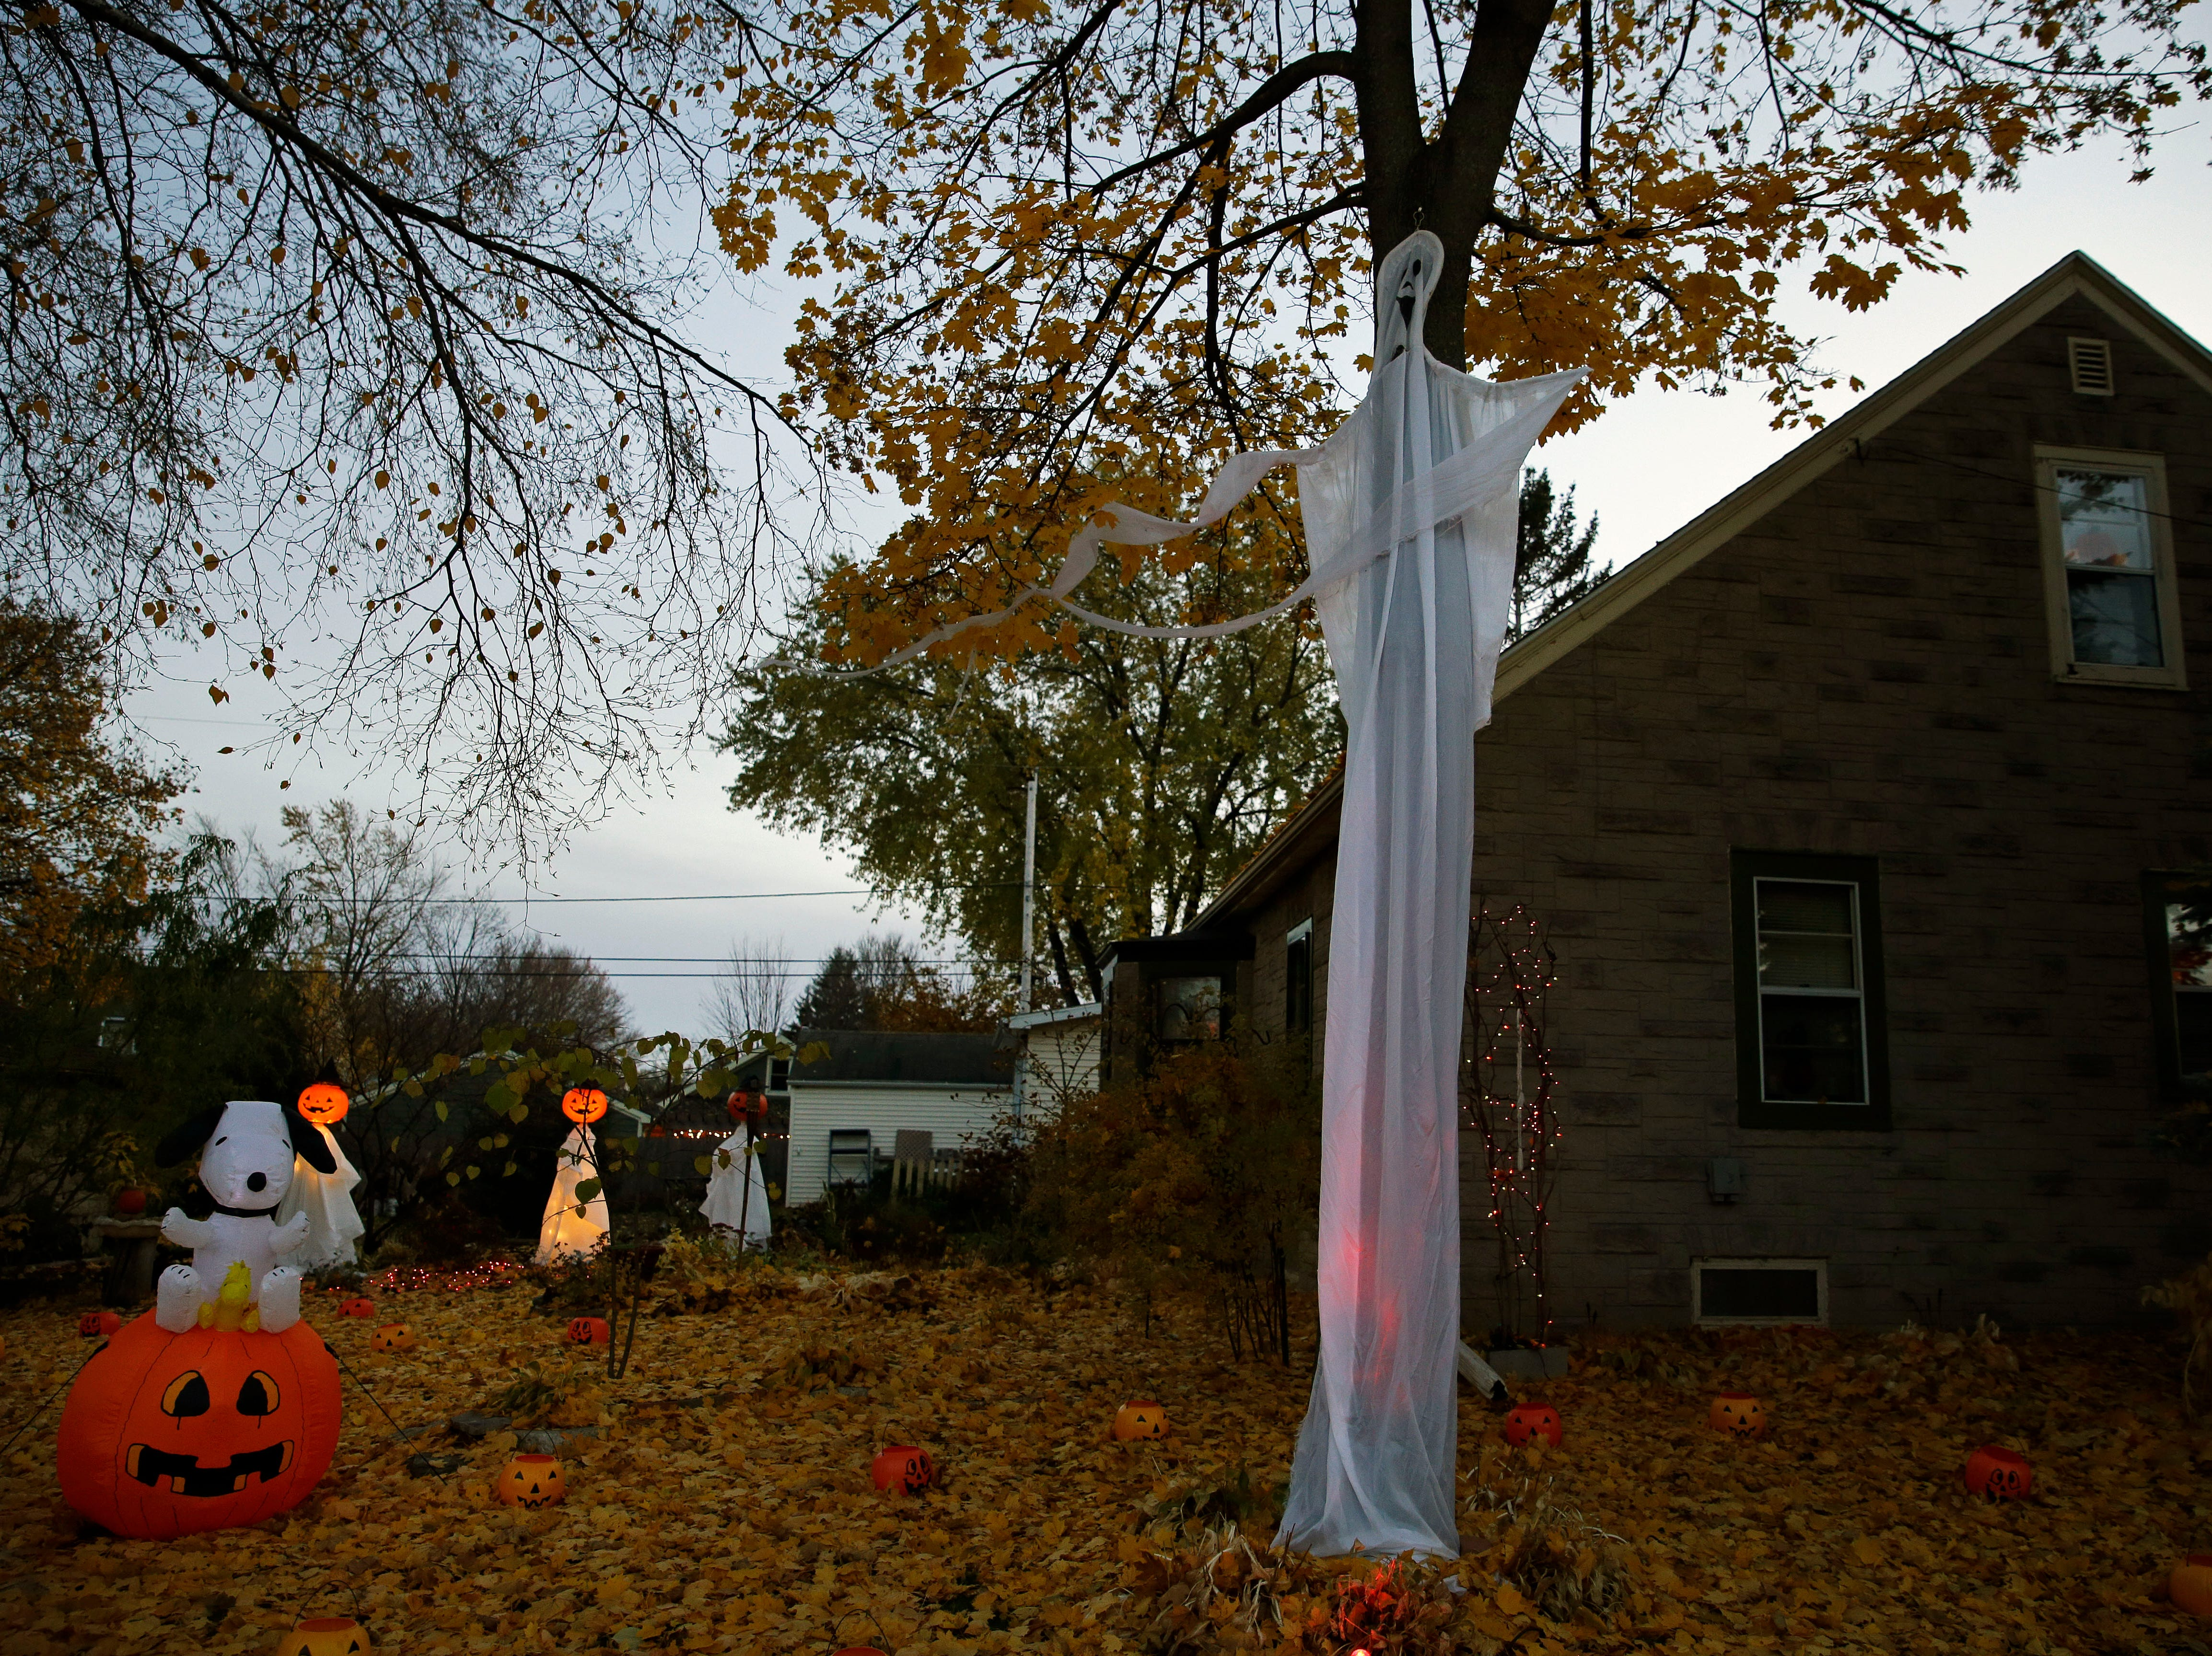 Brian Kemp has his house decorated for the big day Wednesday, October 31, 2018, in Appleton, Wis.